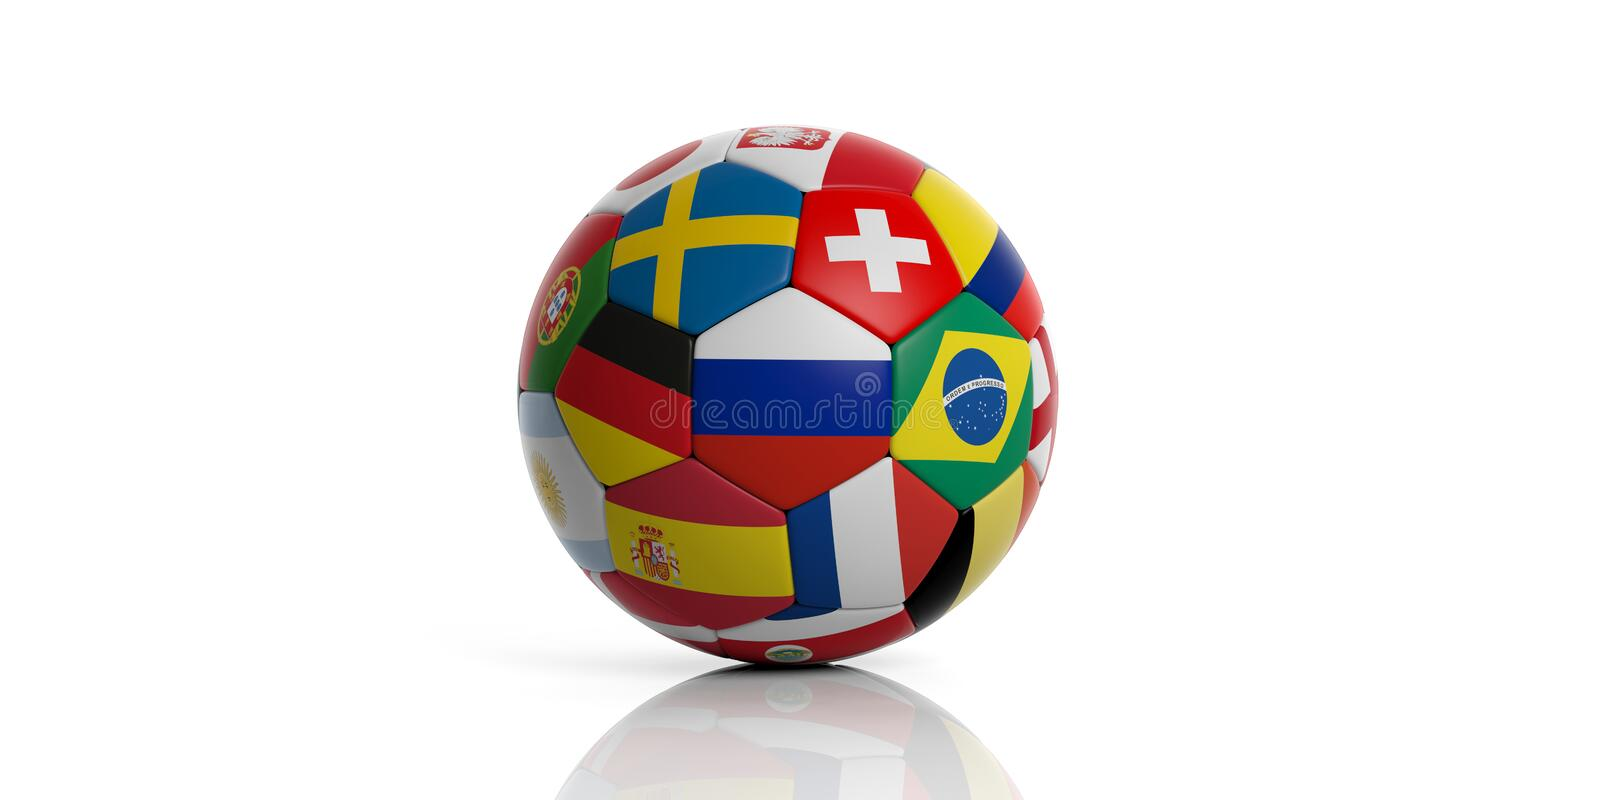 Football soccer ball with world flags isolated on white background. 3d illustration royalty free illustration